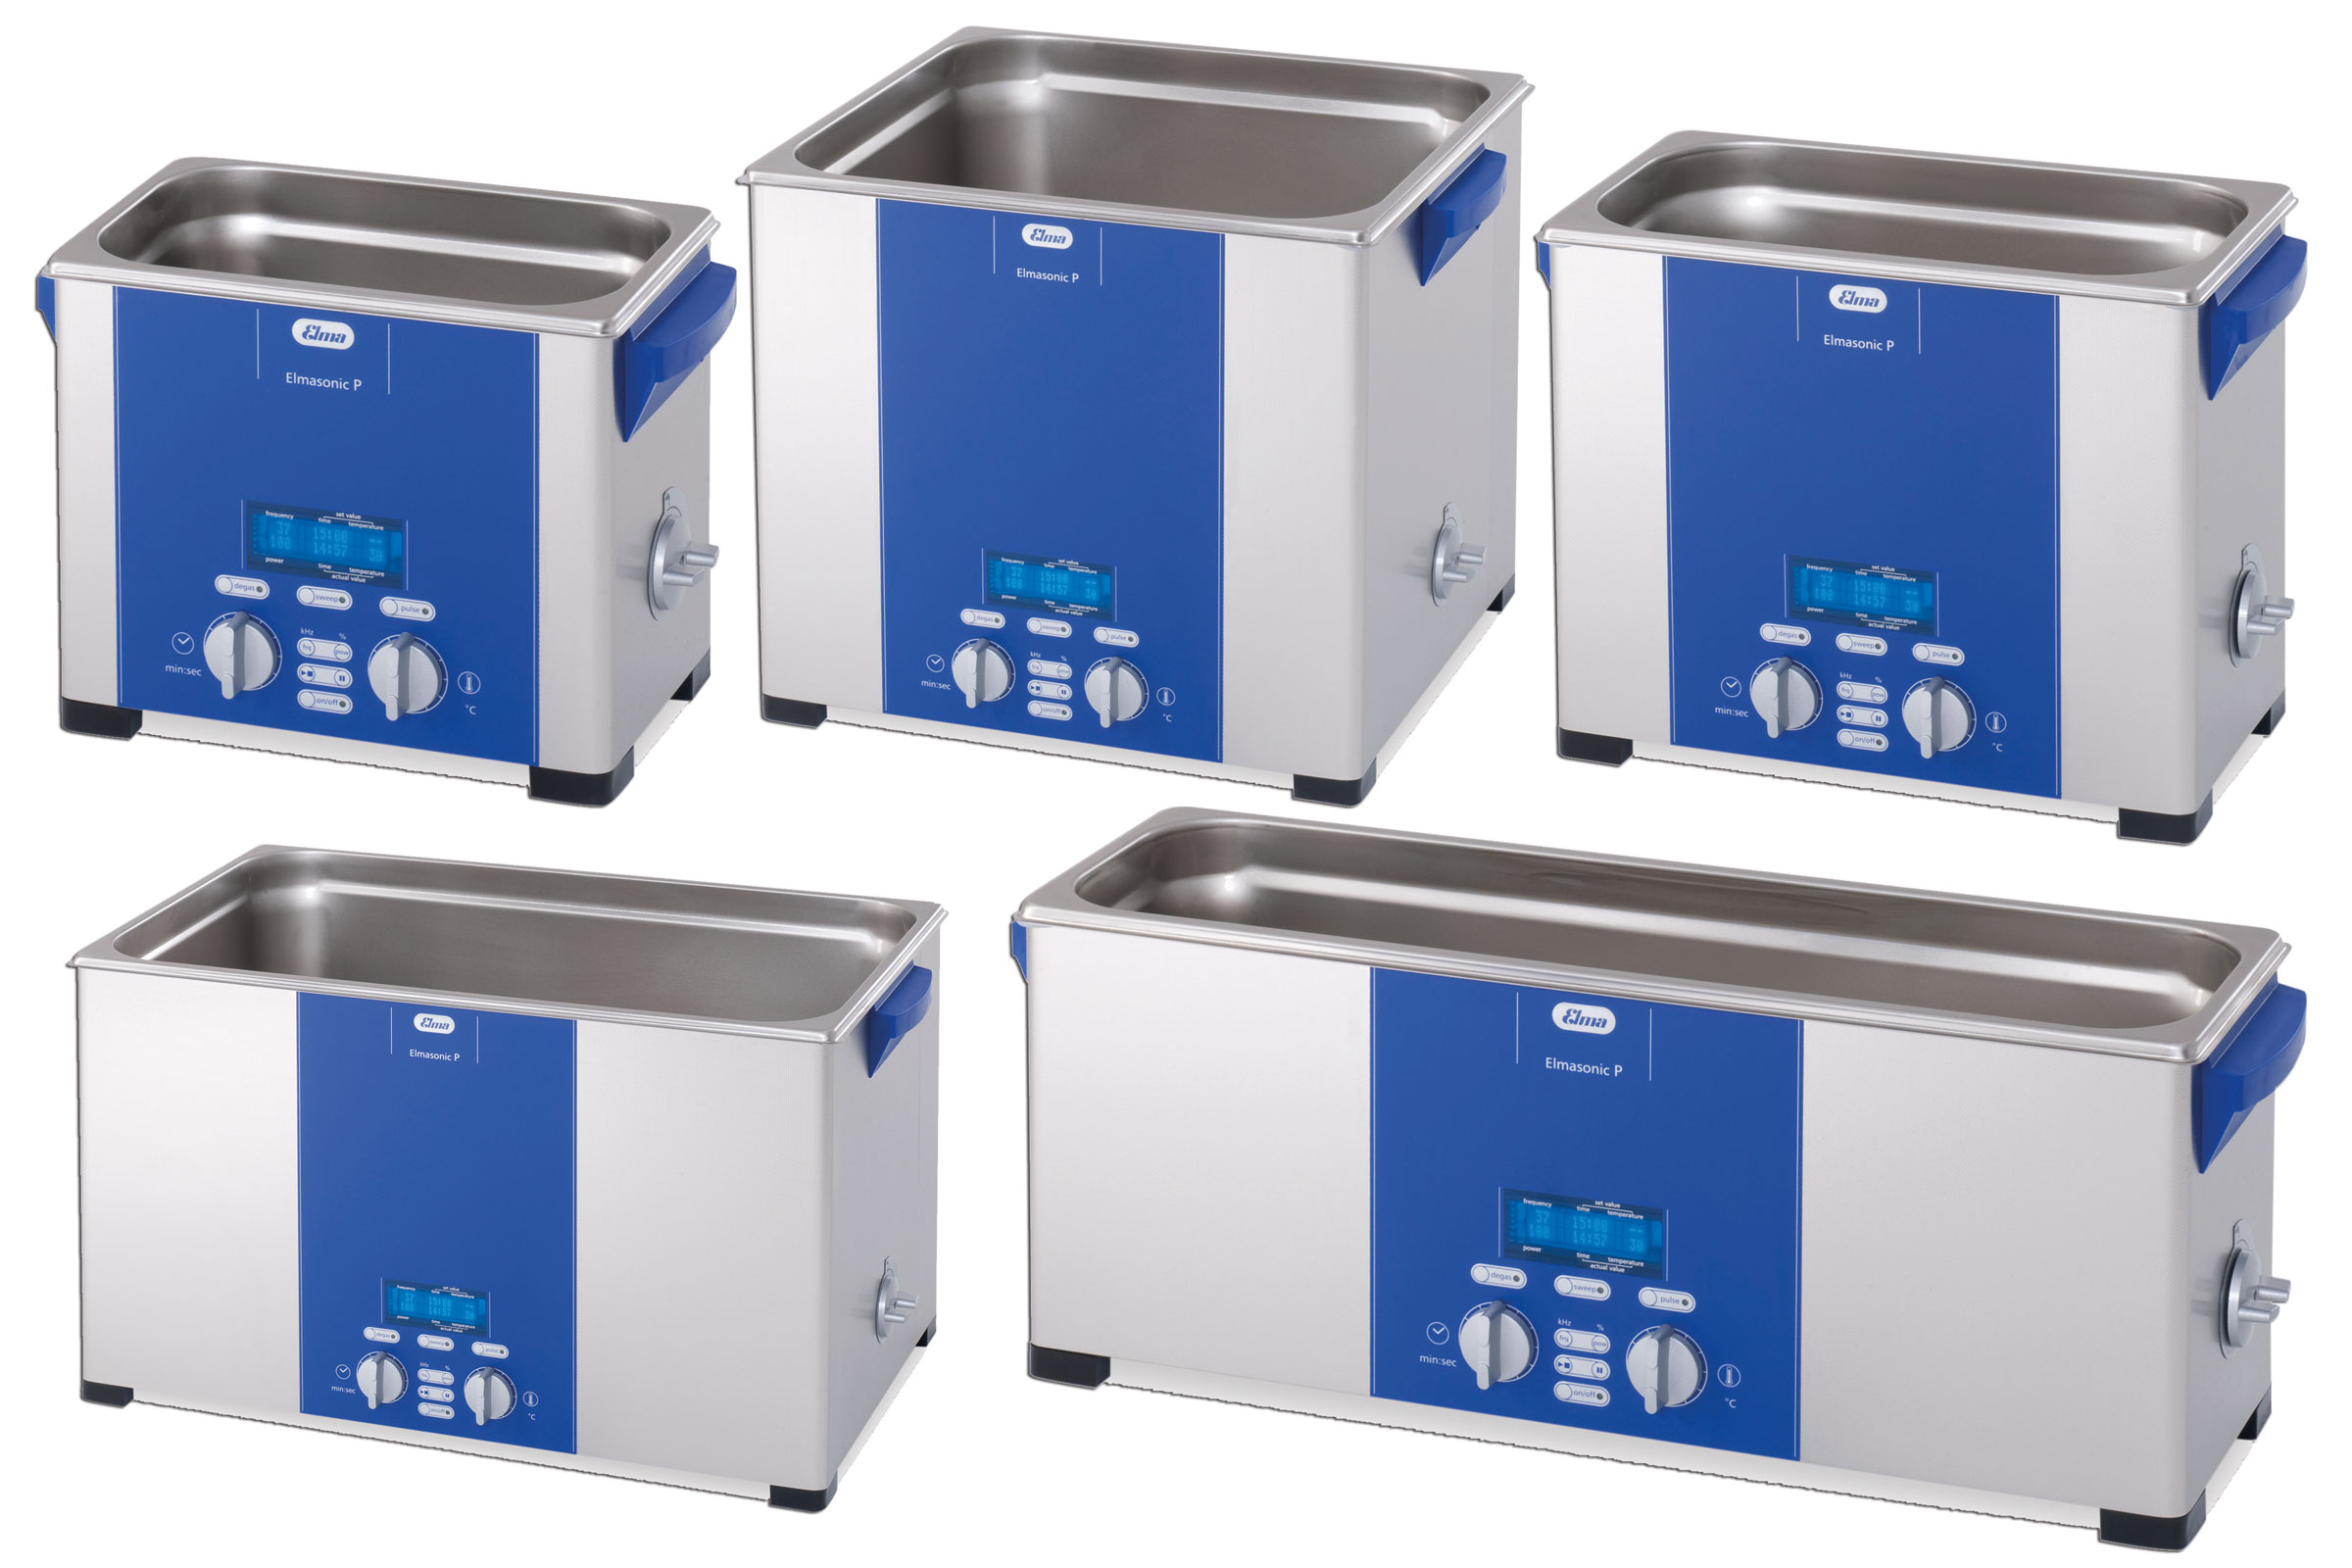 P30H Ultrasonic Cleaner w/ hea w/ heat, drain adj. power